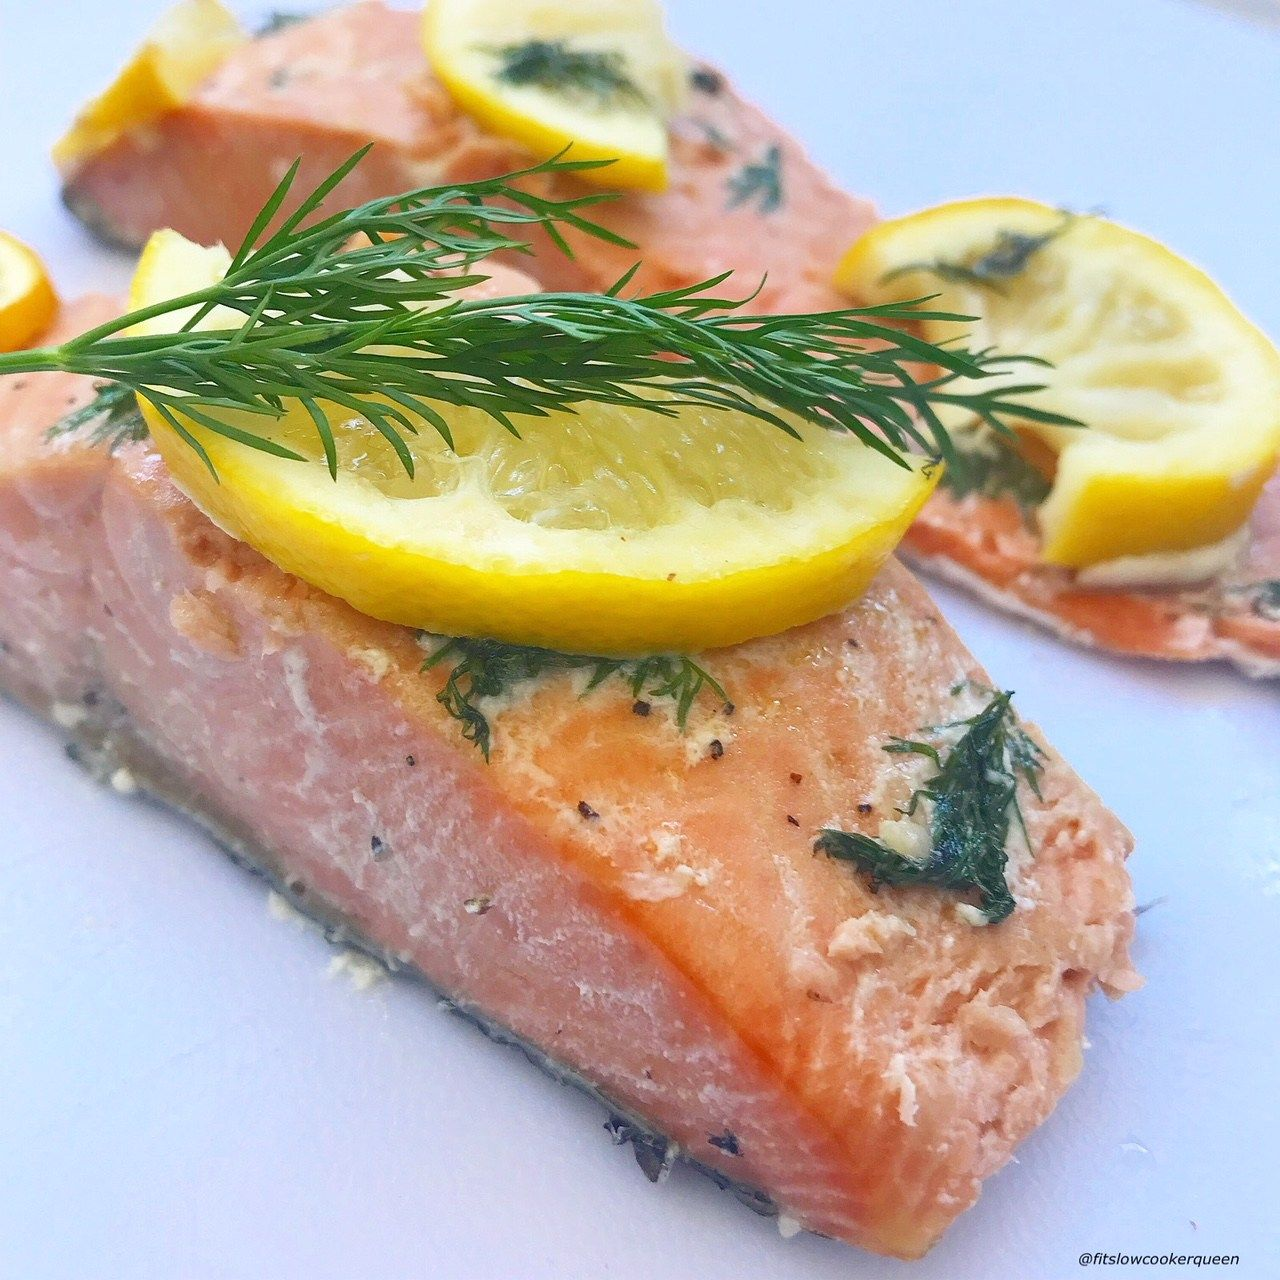 Slow Cooker Salmon with Lemon and Dill Low-carb, paleo, Whole-30, and totally tasty. And, get this, all you have to do is pop the protein, known for being a superb source of brain-boosting omega-3s , in the Crock Pot and let 'er cook.